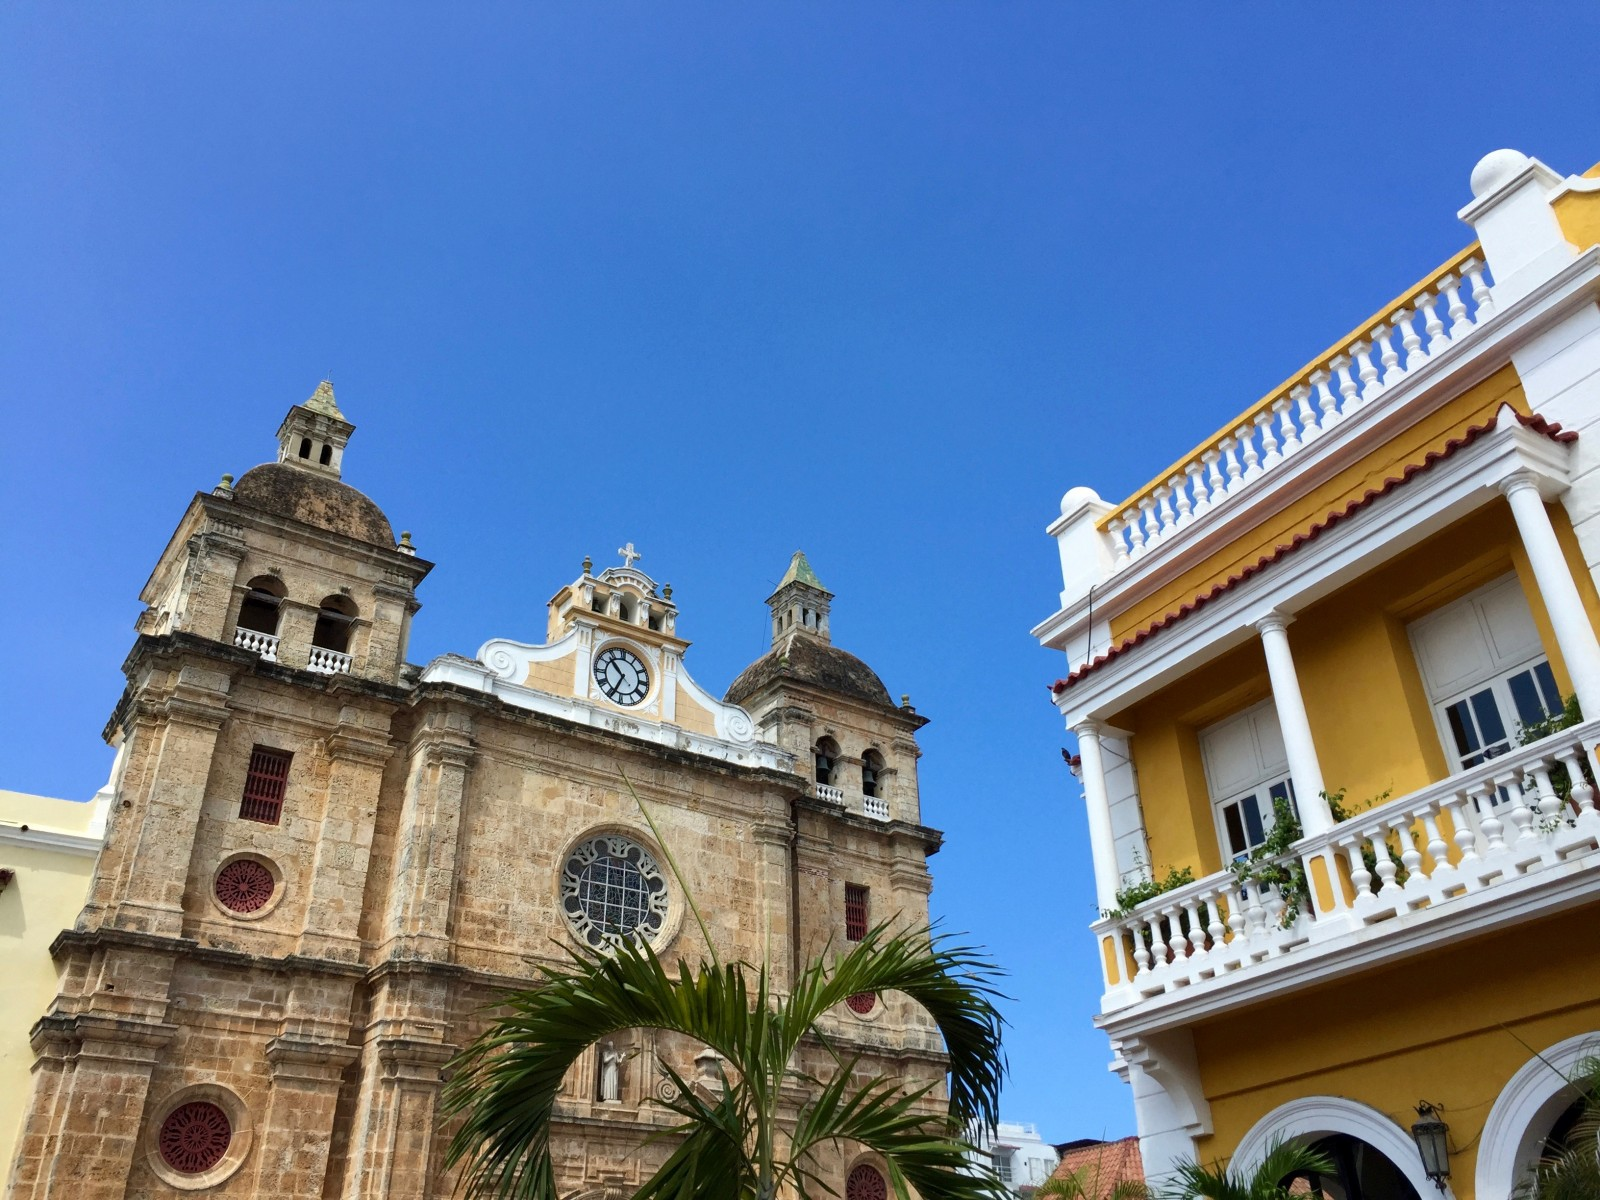 Colorful and historic, the architecture in the Old City of Colombia makes for an interesting side trip for crew and guests. PHOTO PROVIDED